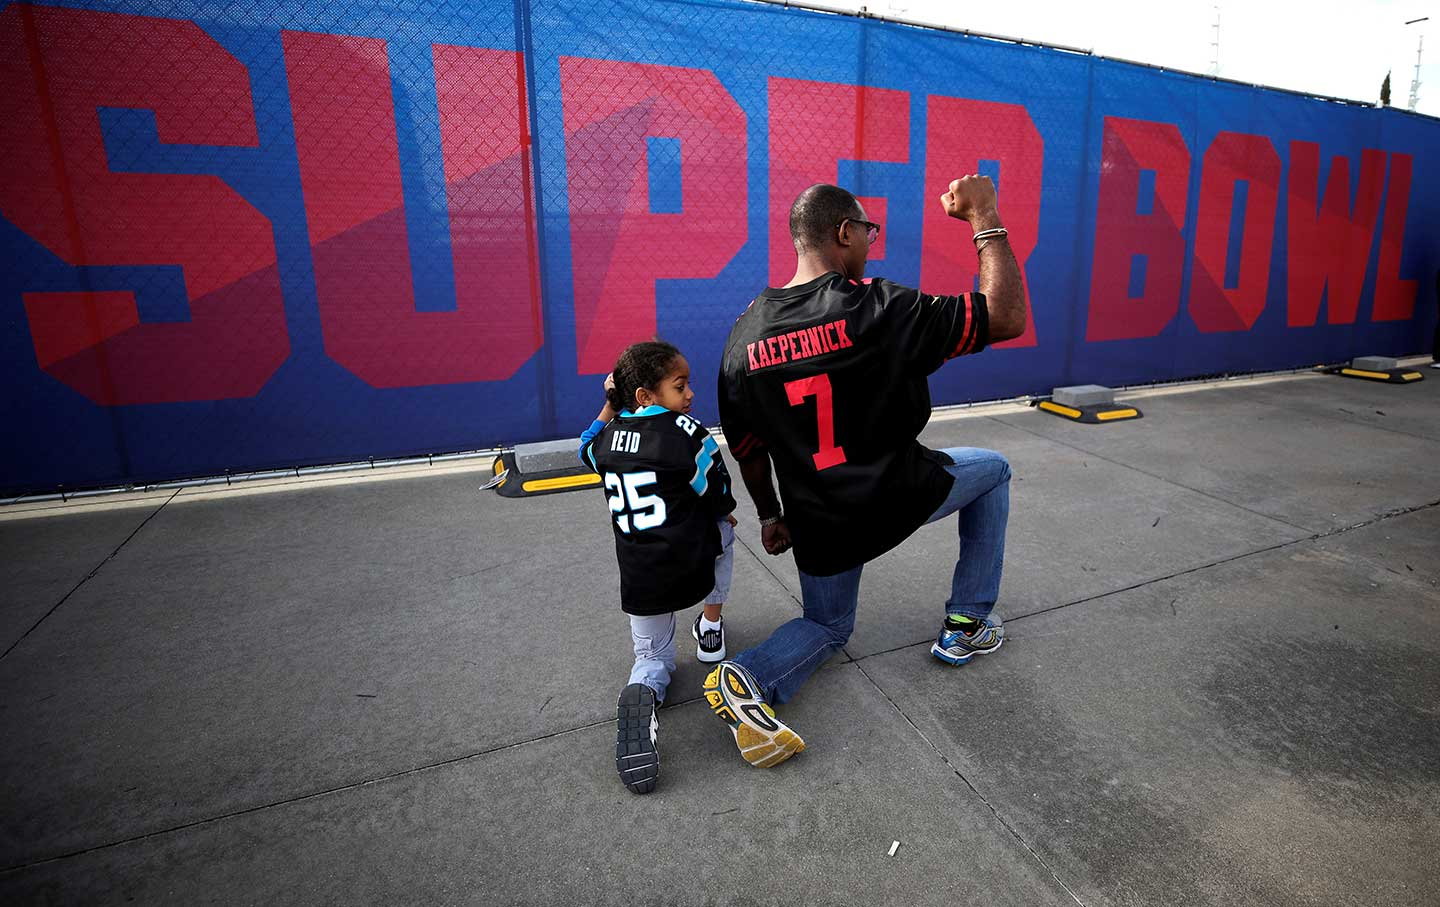 big sale 8813c d32ae The Only Super Bowl Tension Was Off the Field | The Nation